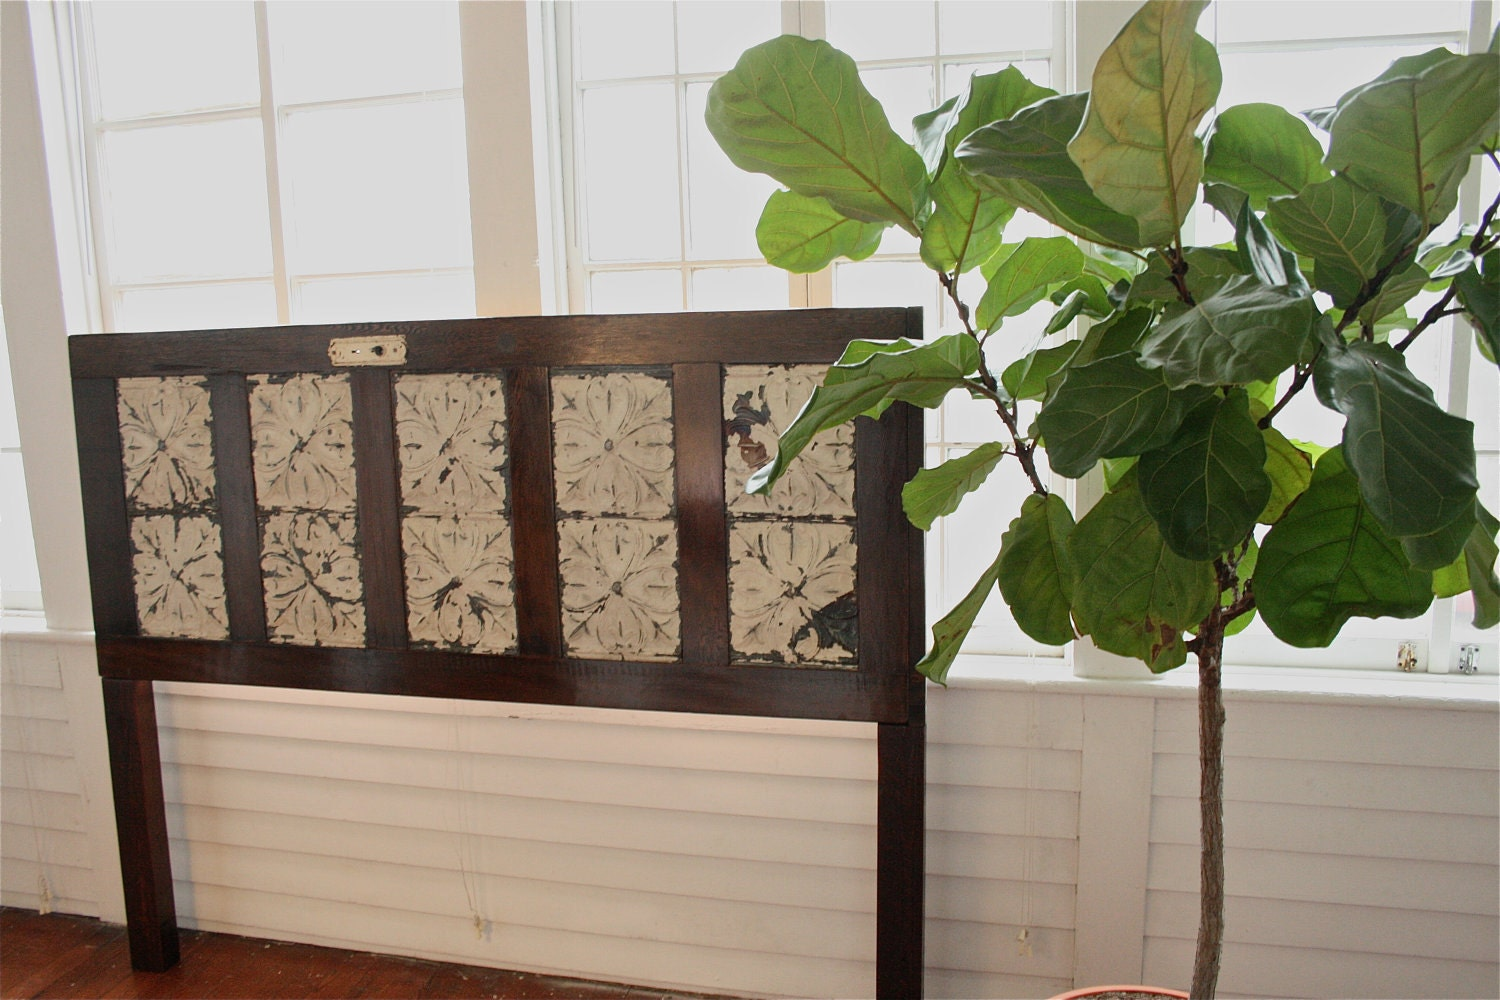 King sized headboard made from old door with by doormandesigns - Headboard made from old door ...